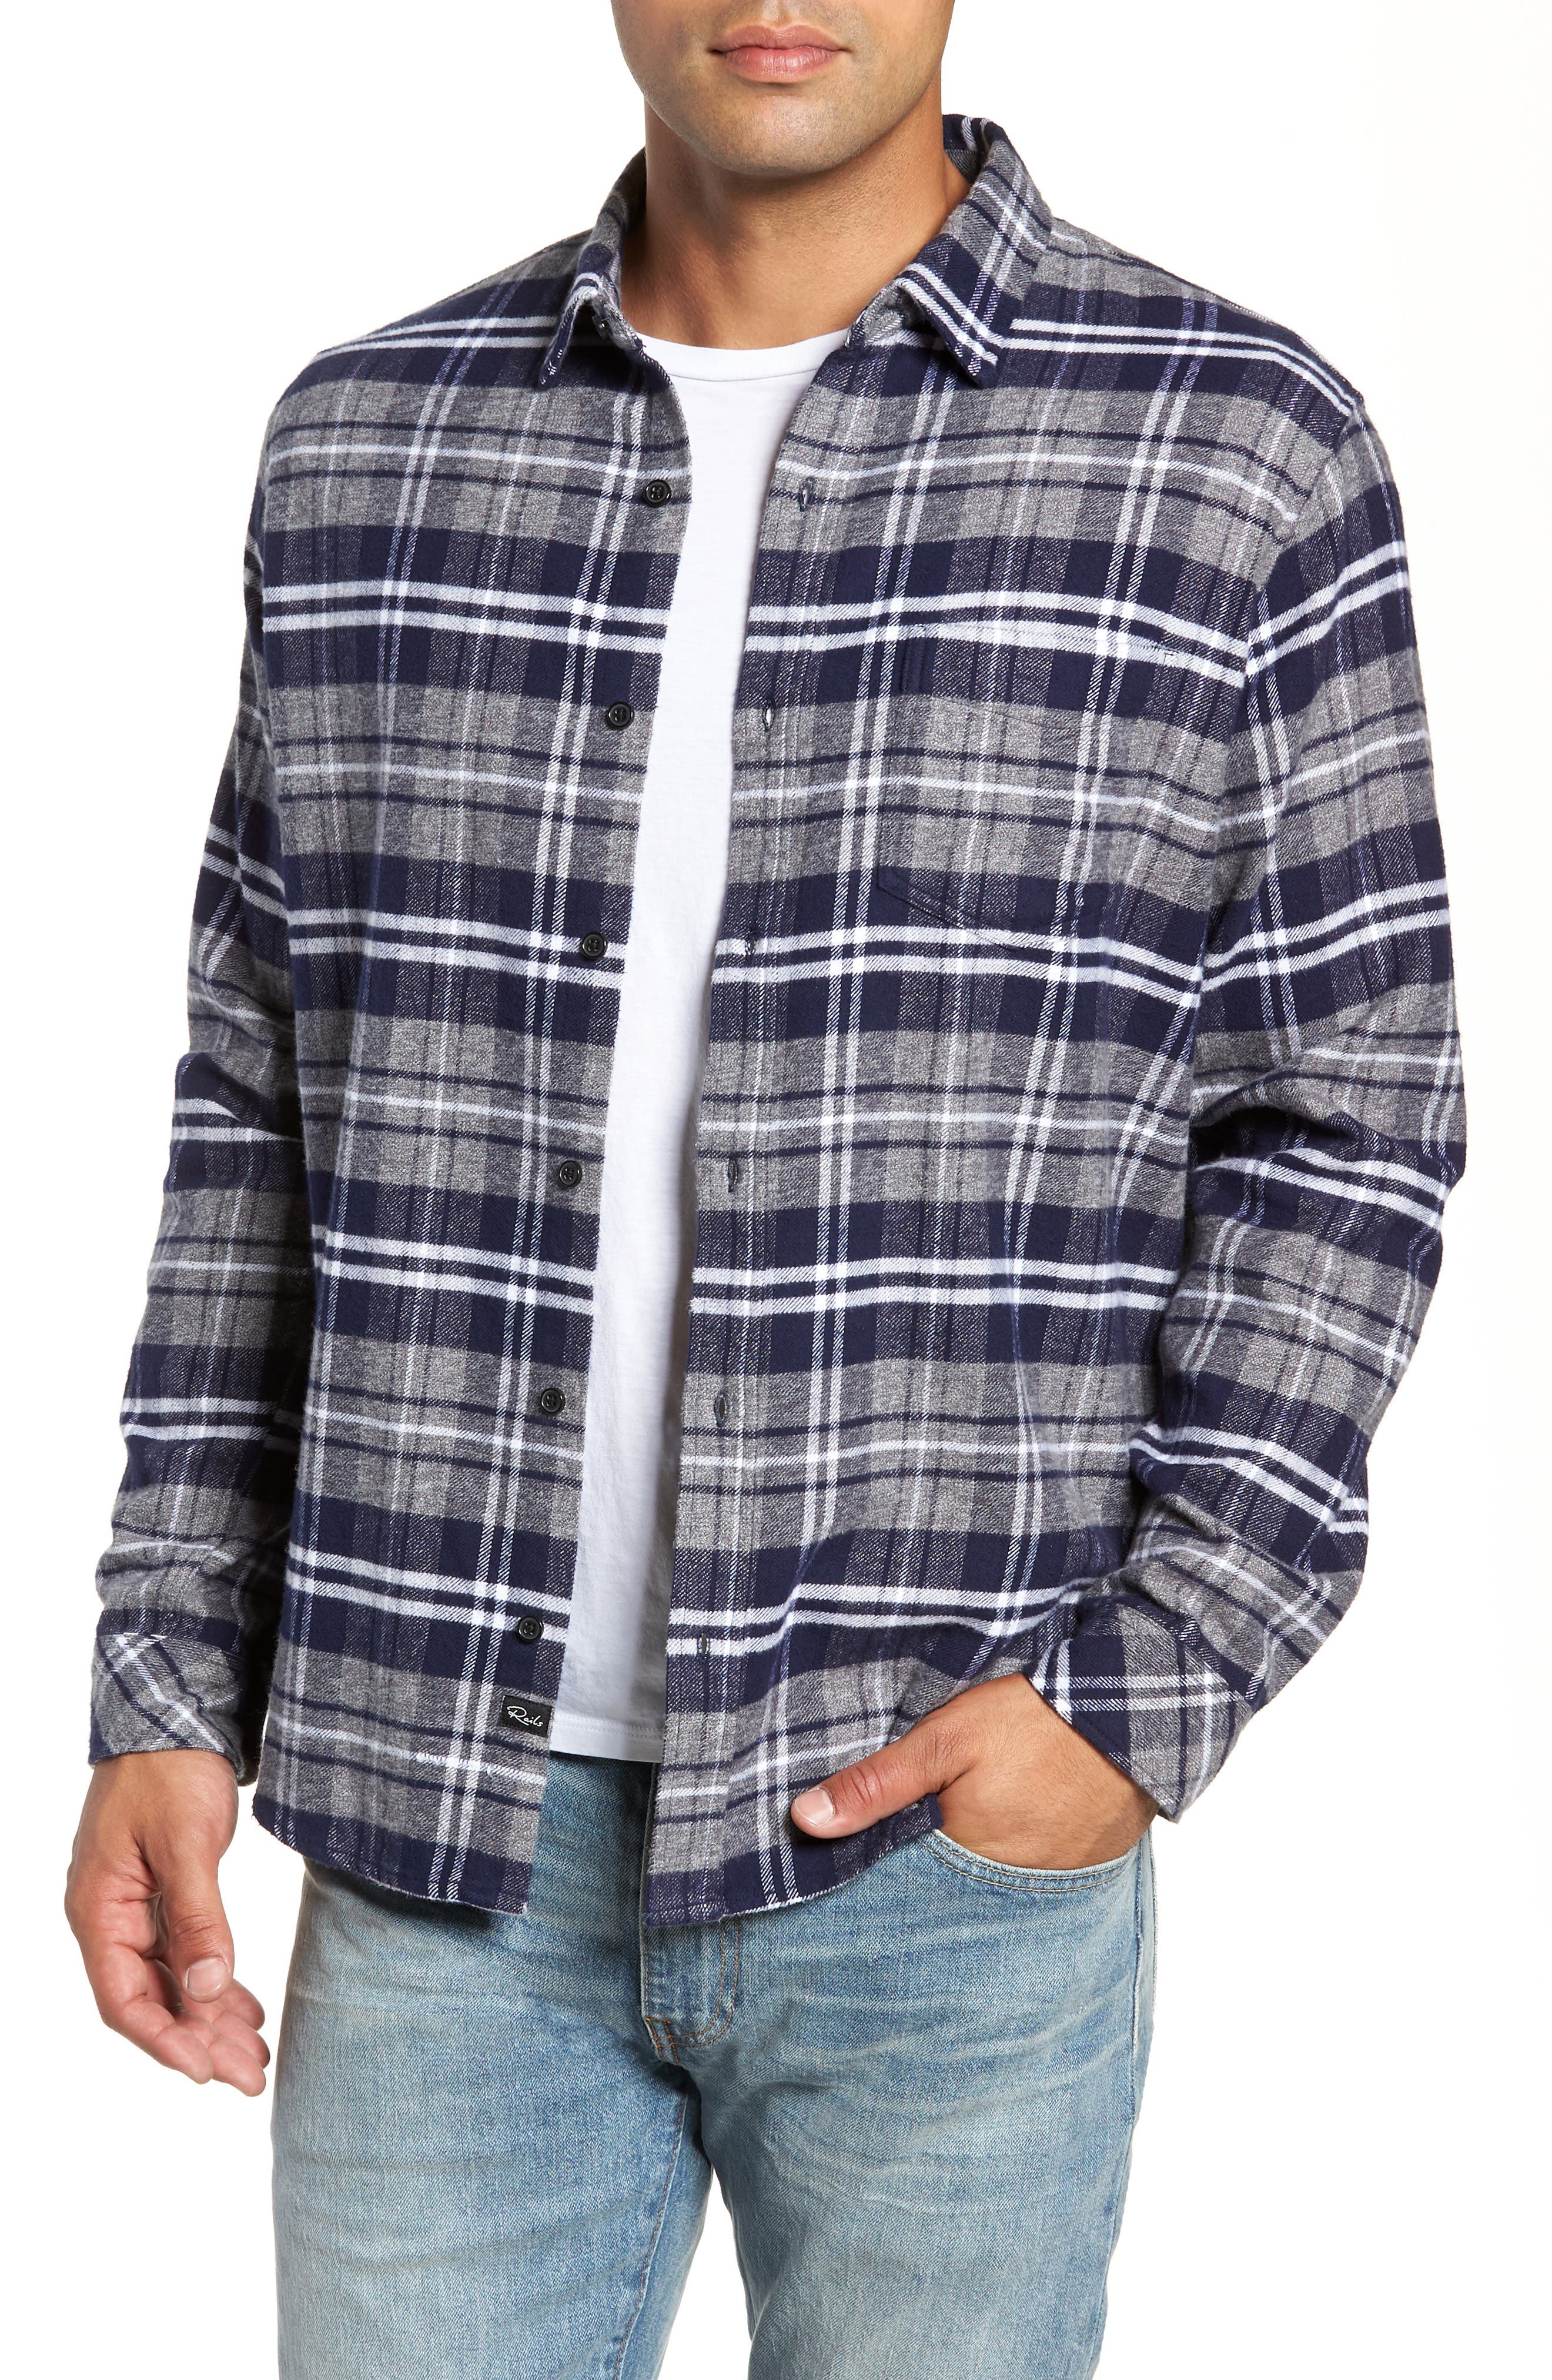 Forrest Slim Fit Plaid Flannel Sport Shirt,                             Main thumbnail 1, color,                             NAVY/LIGHT GREY/WHITE